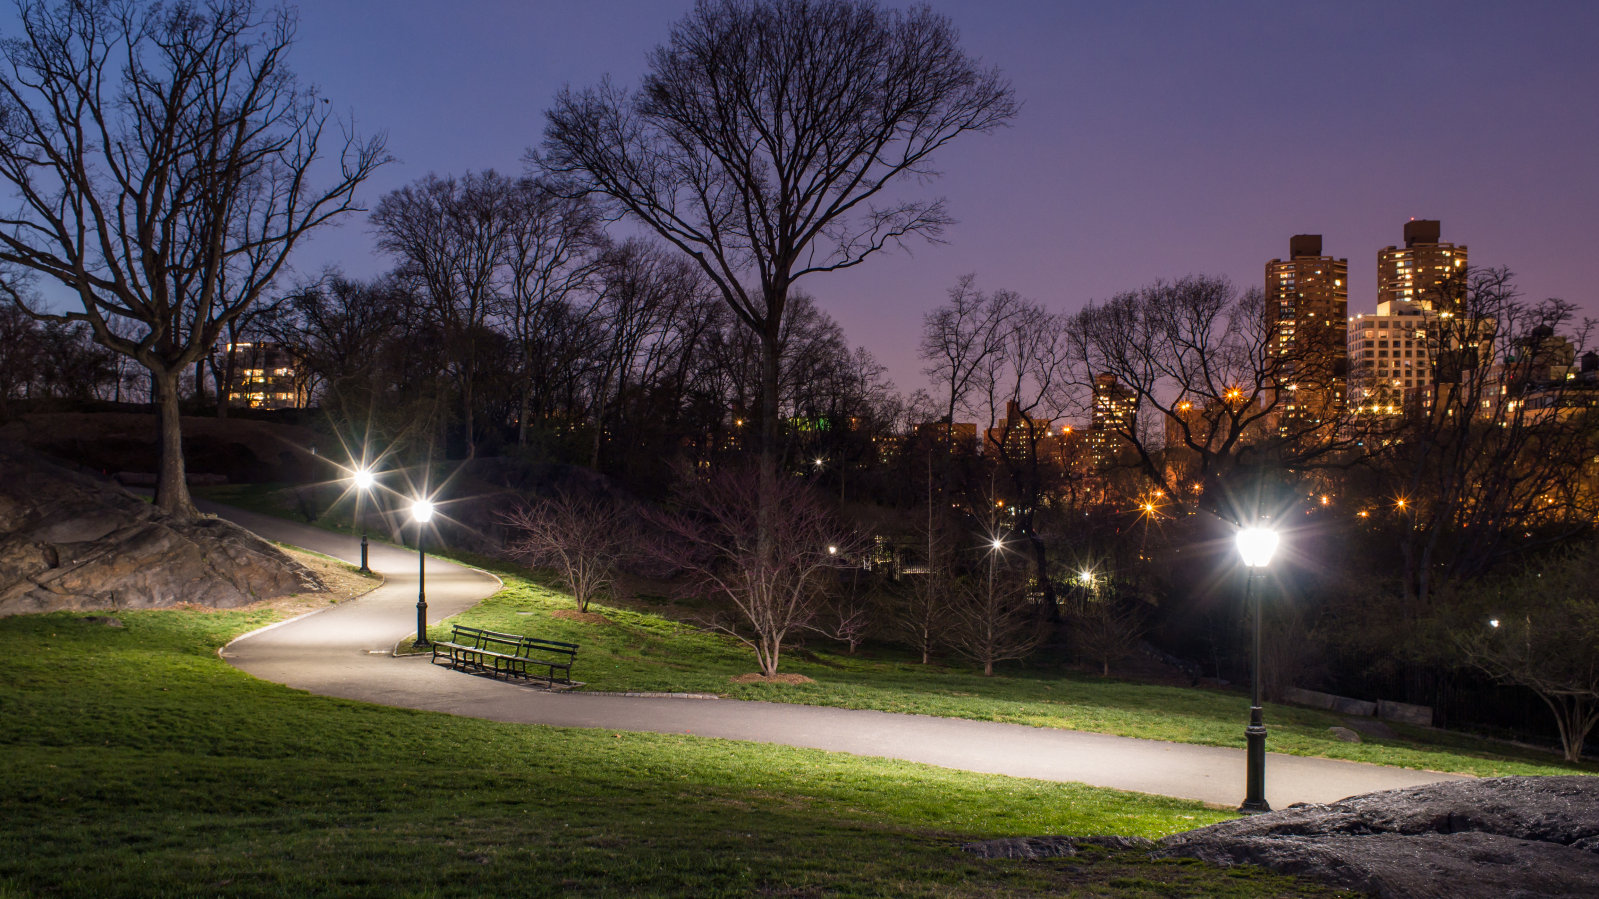 Park lighting